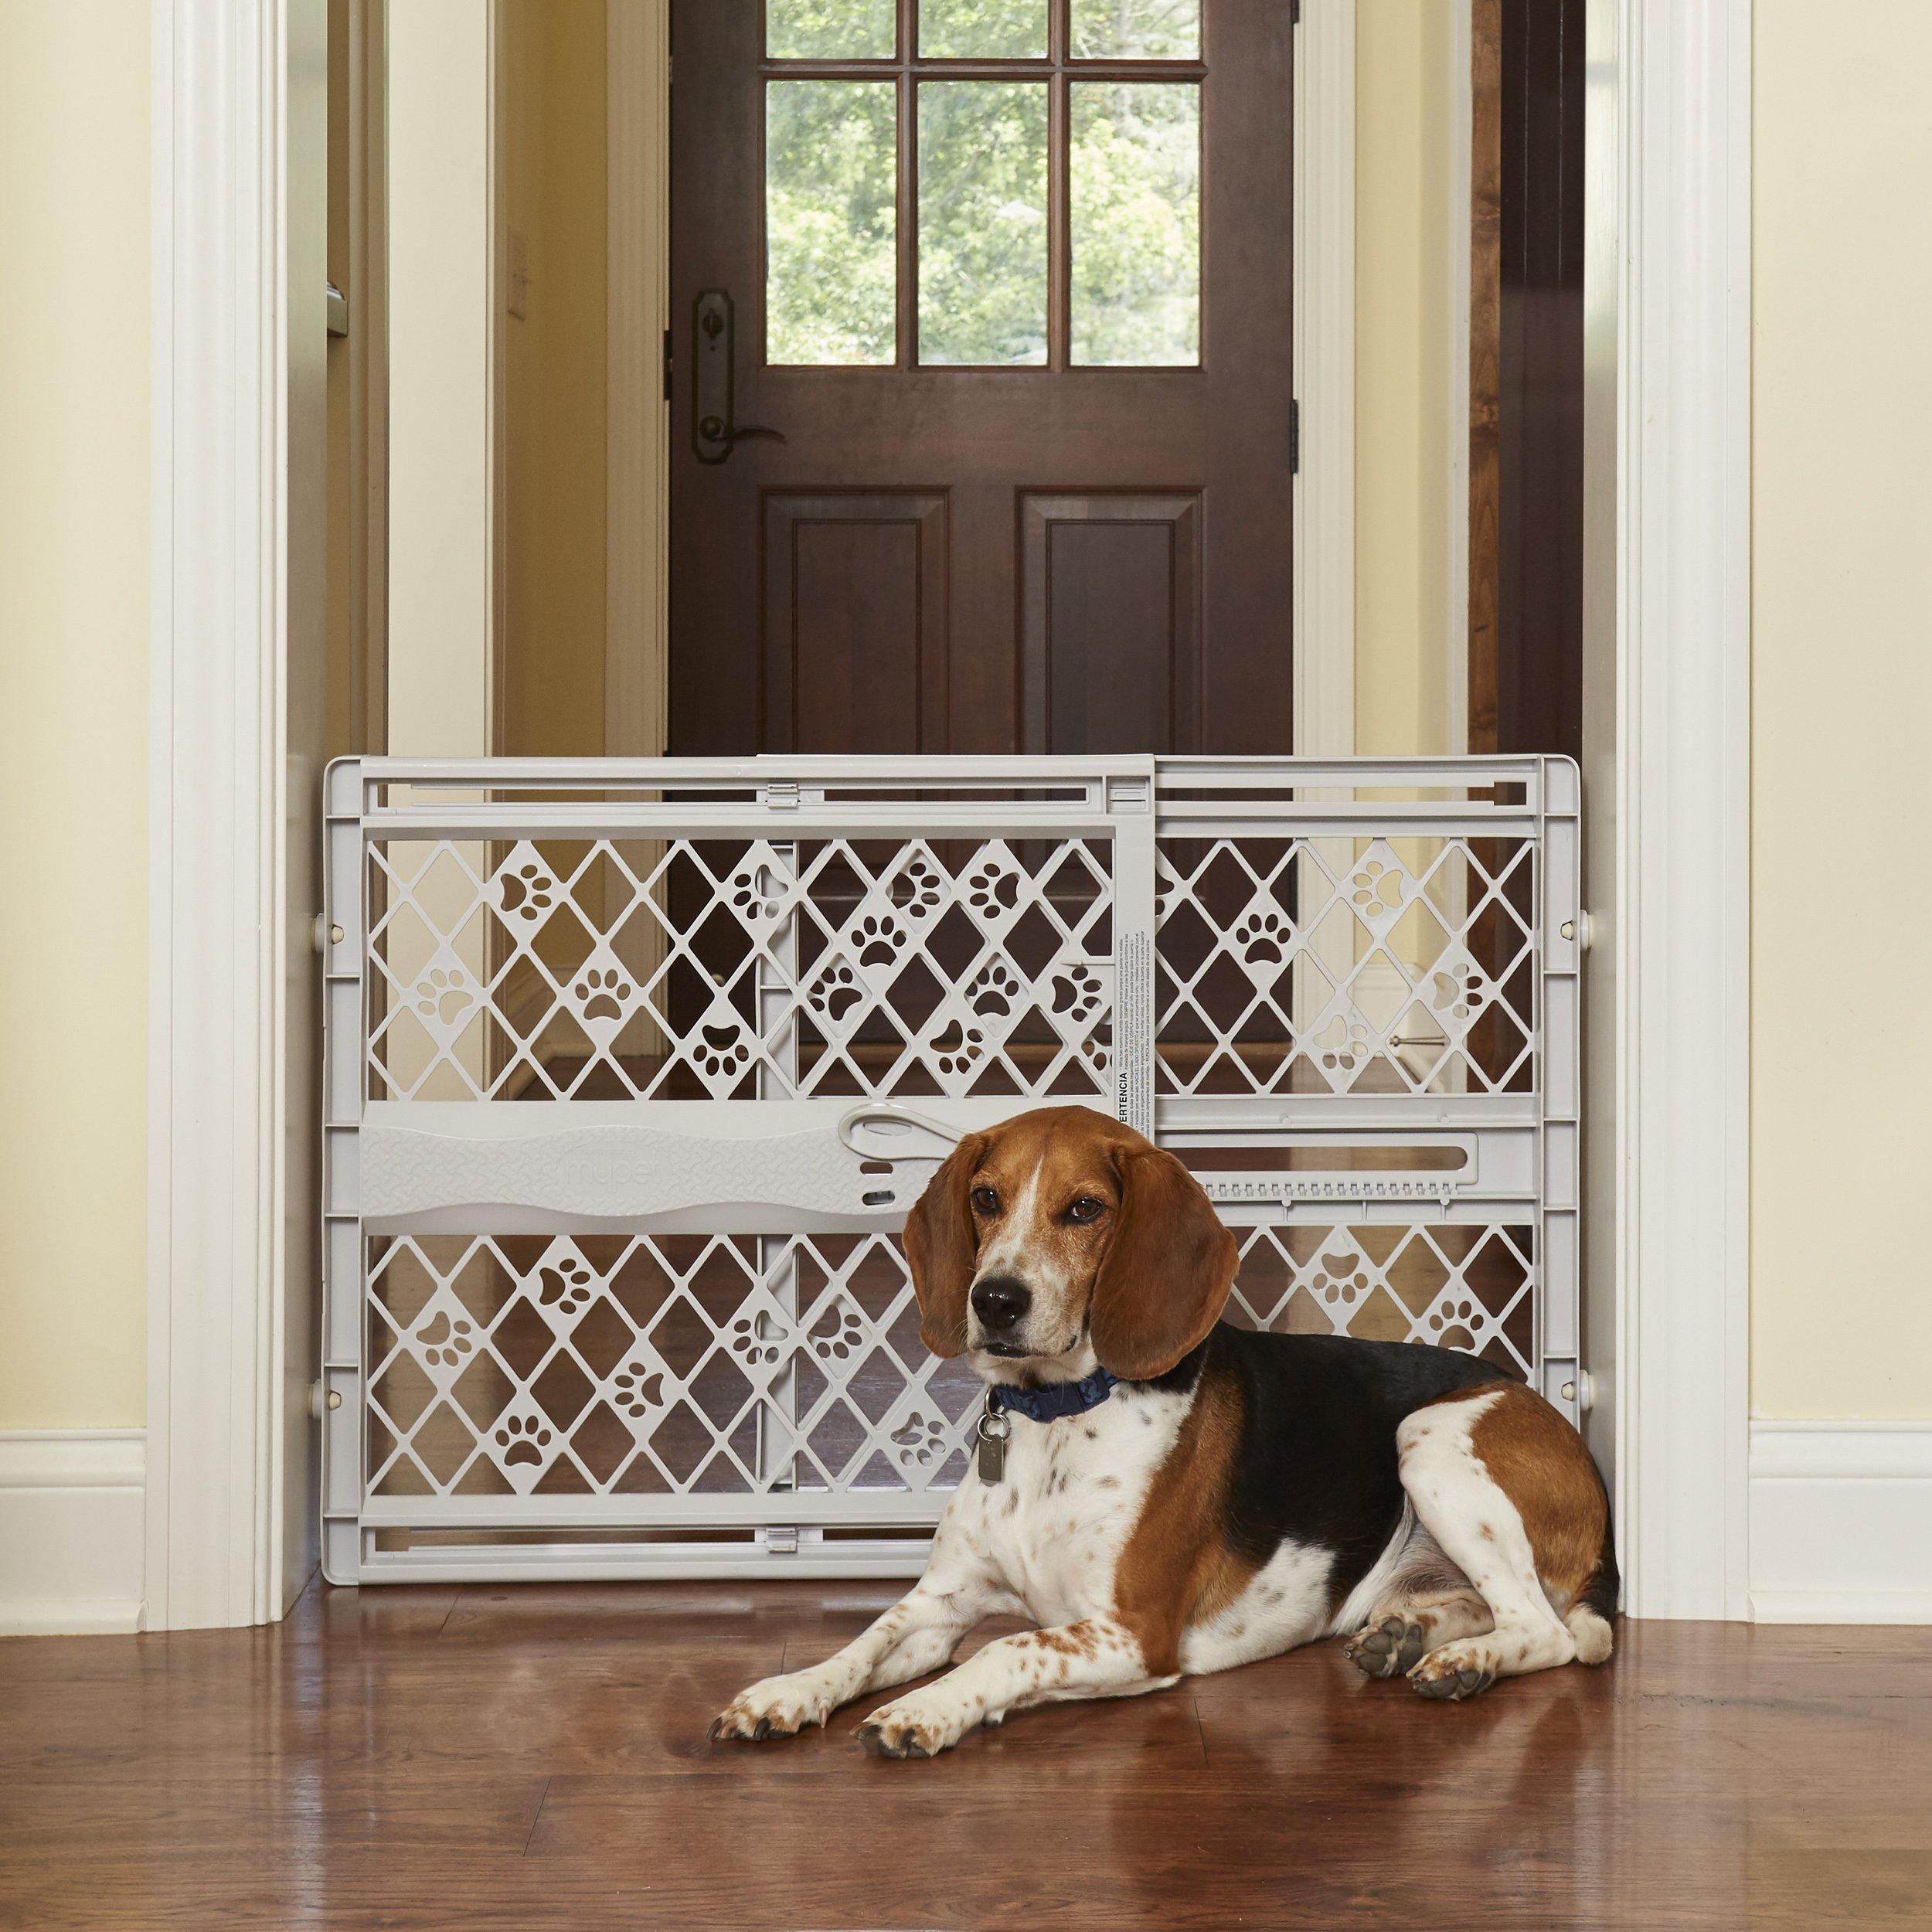 North States Pet MyPet Paws Portable Pet Gate fits Openings 26'' to 42'' Wide by North States Pet (Image #4)